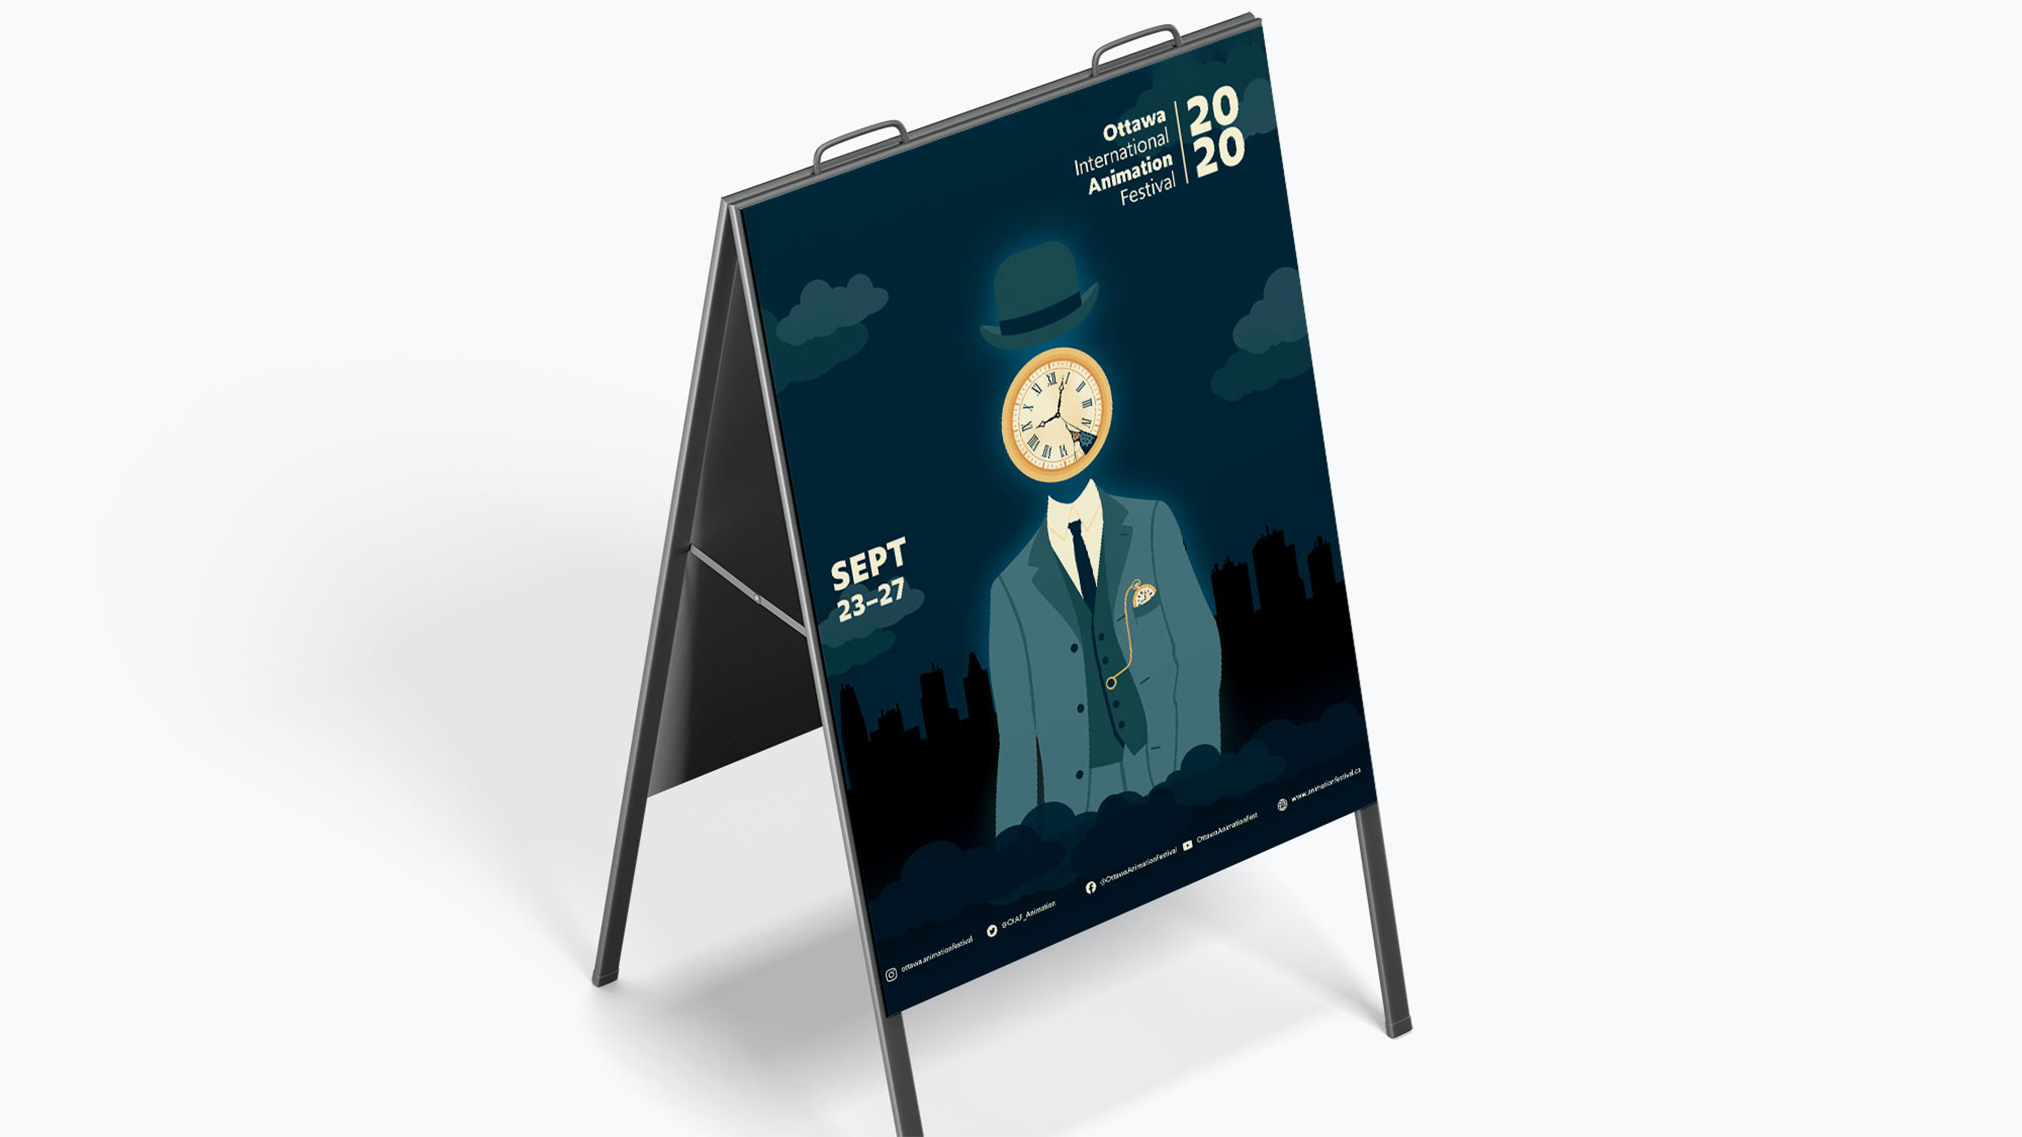 The Ottawa International Animation Festival (OIAF) is a yearly festival showcasing the most interesting animation, needs a posterzine that shows what the festival has to offer.